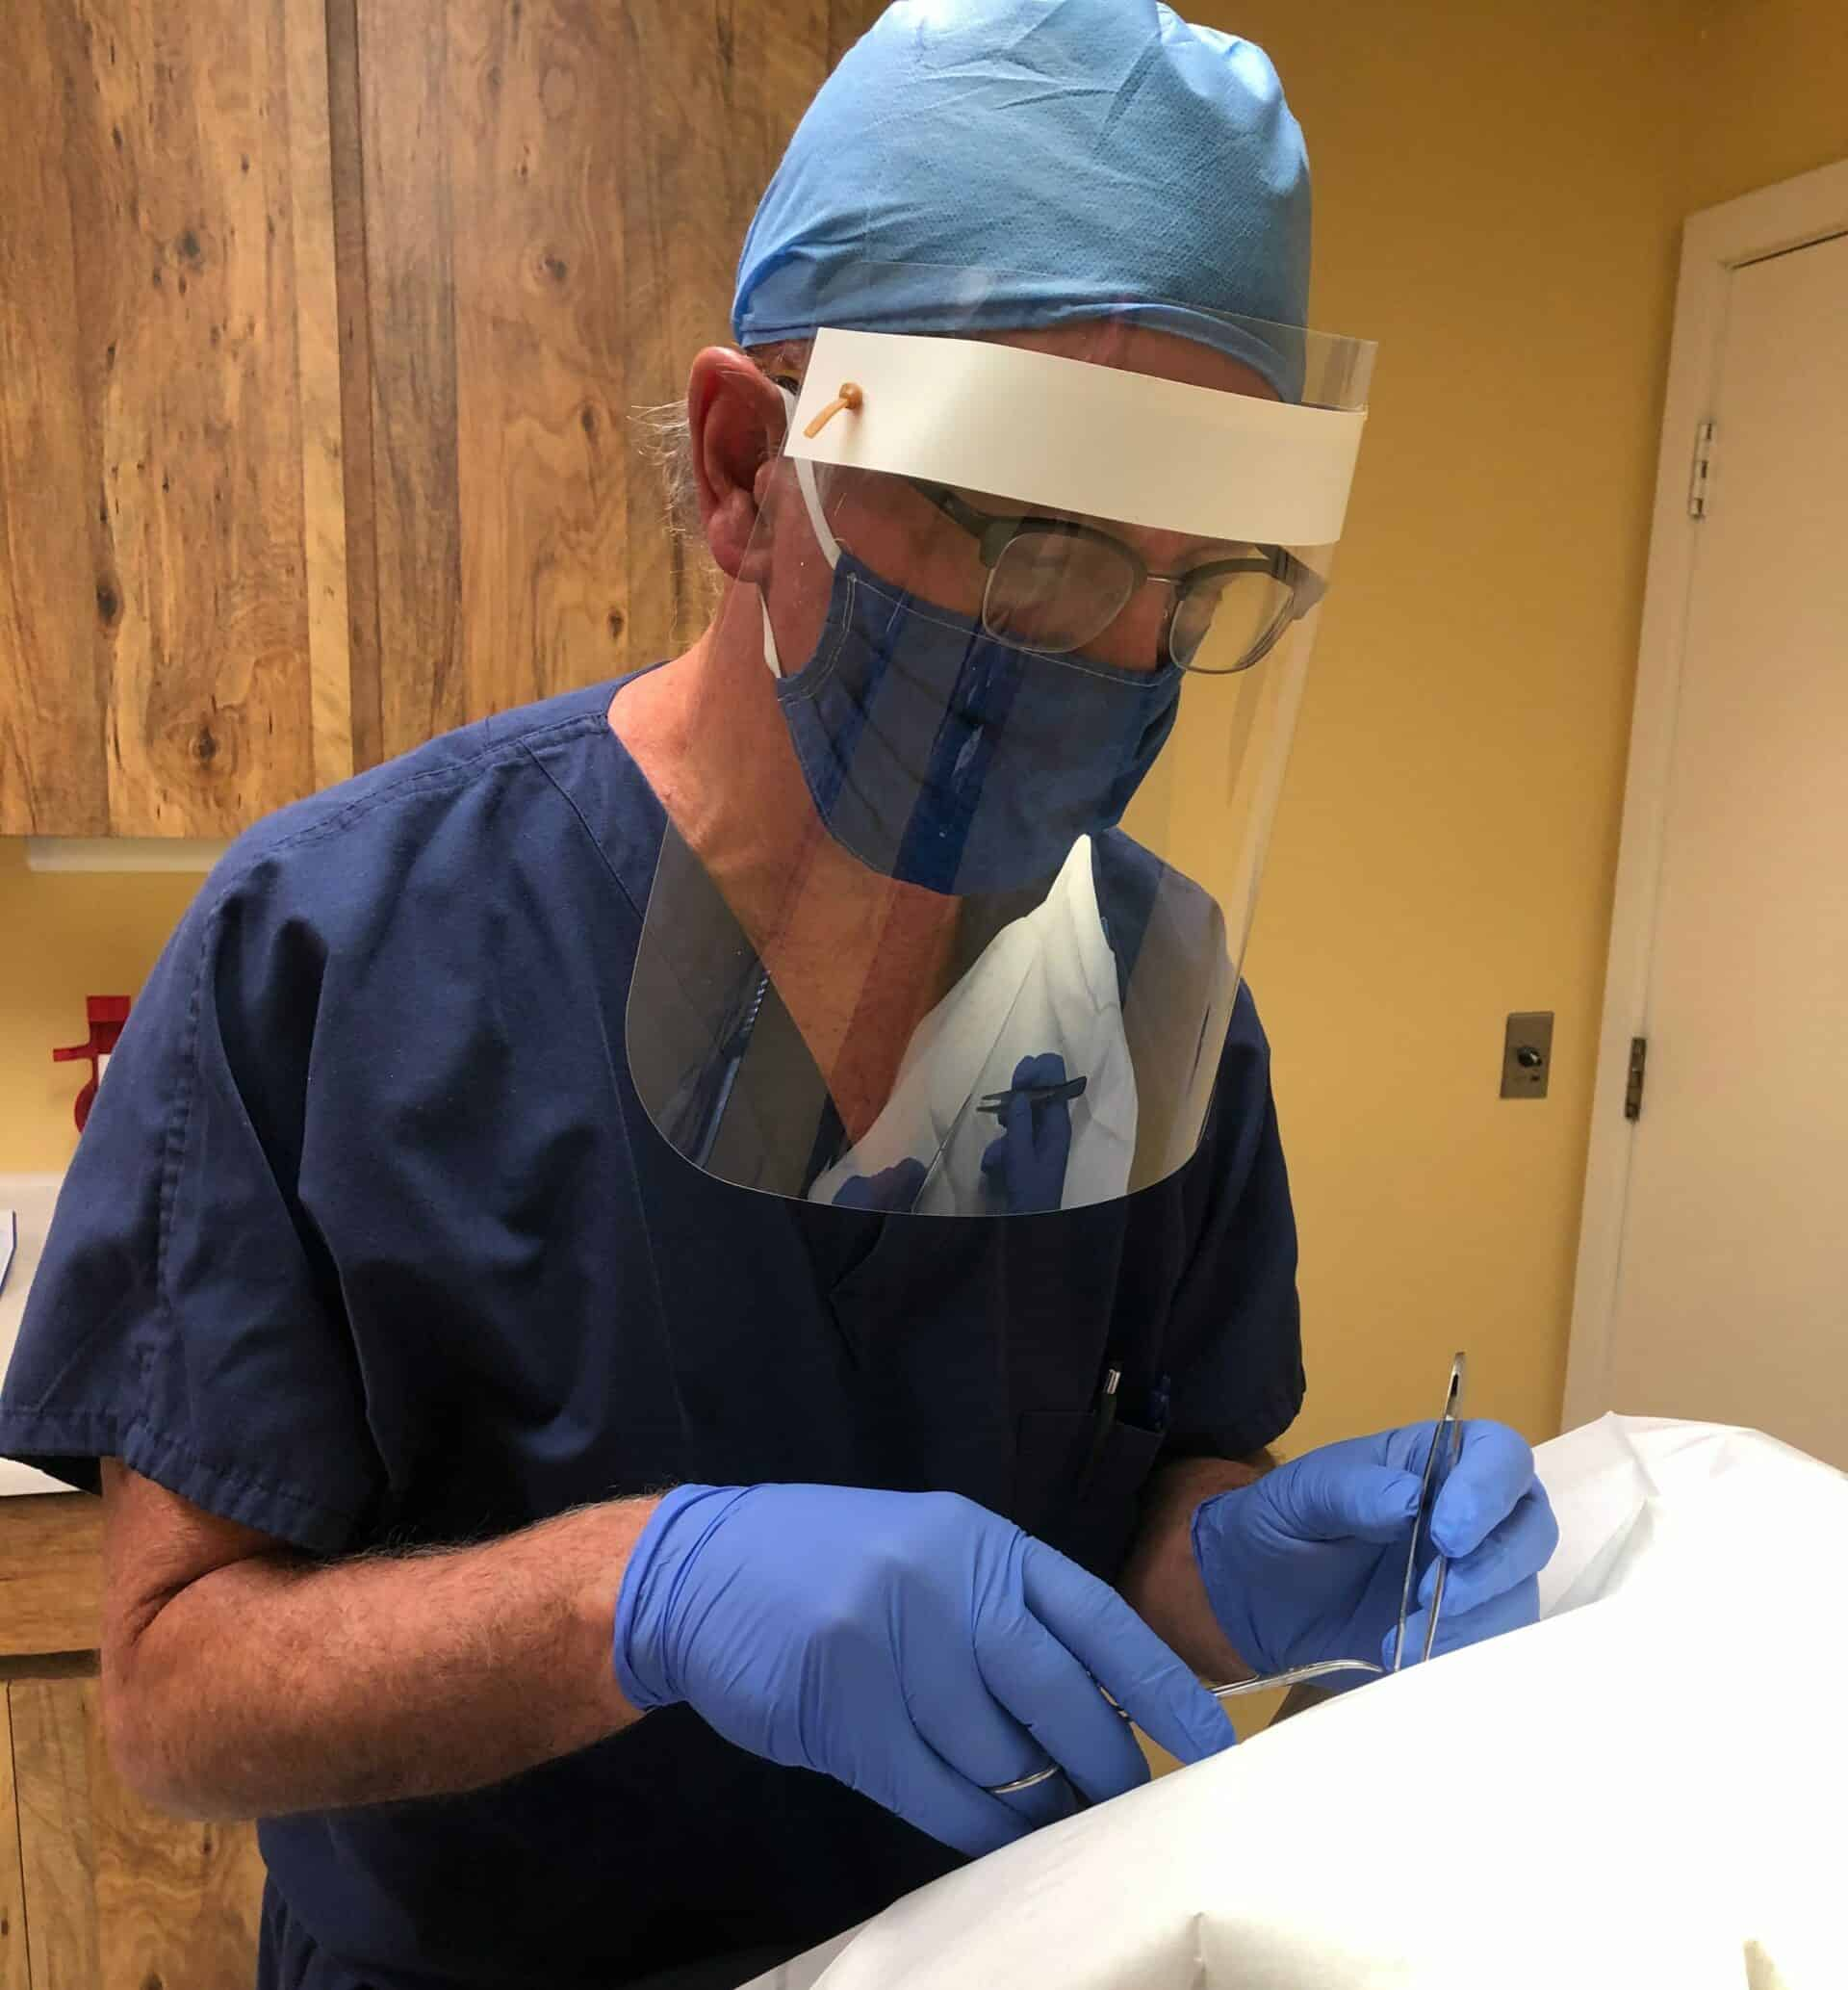 Sarasota doctor wearing Suncoast Science Center/Faulhaber Fab Lab face mask and face shield